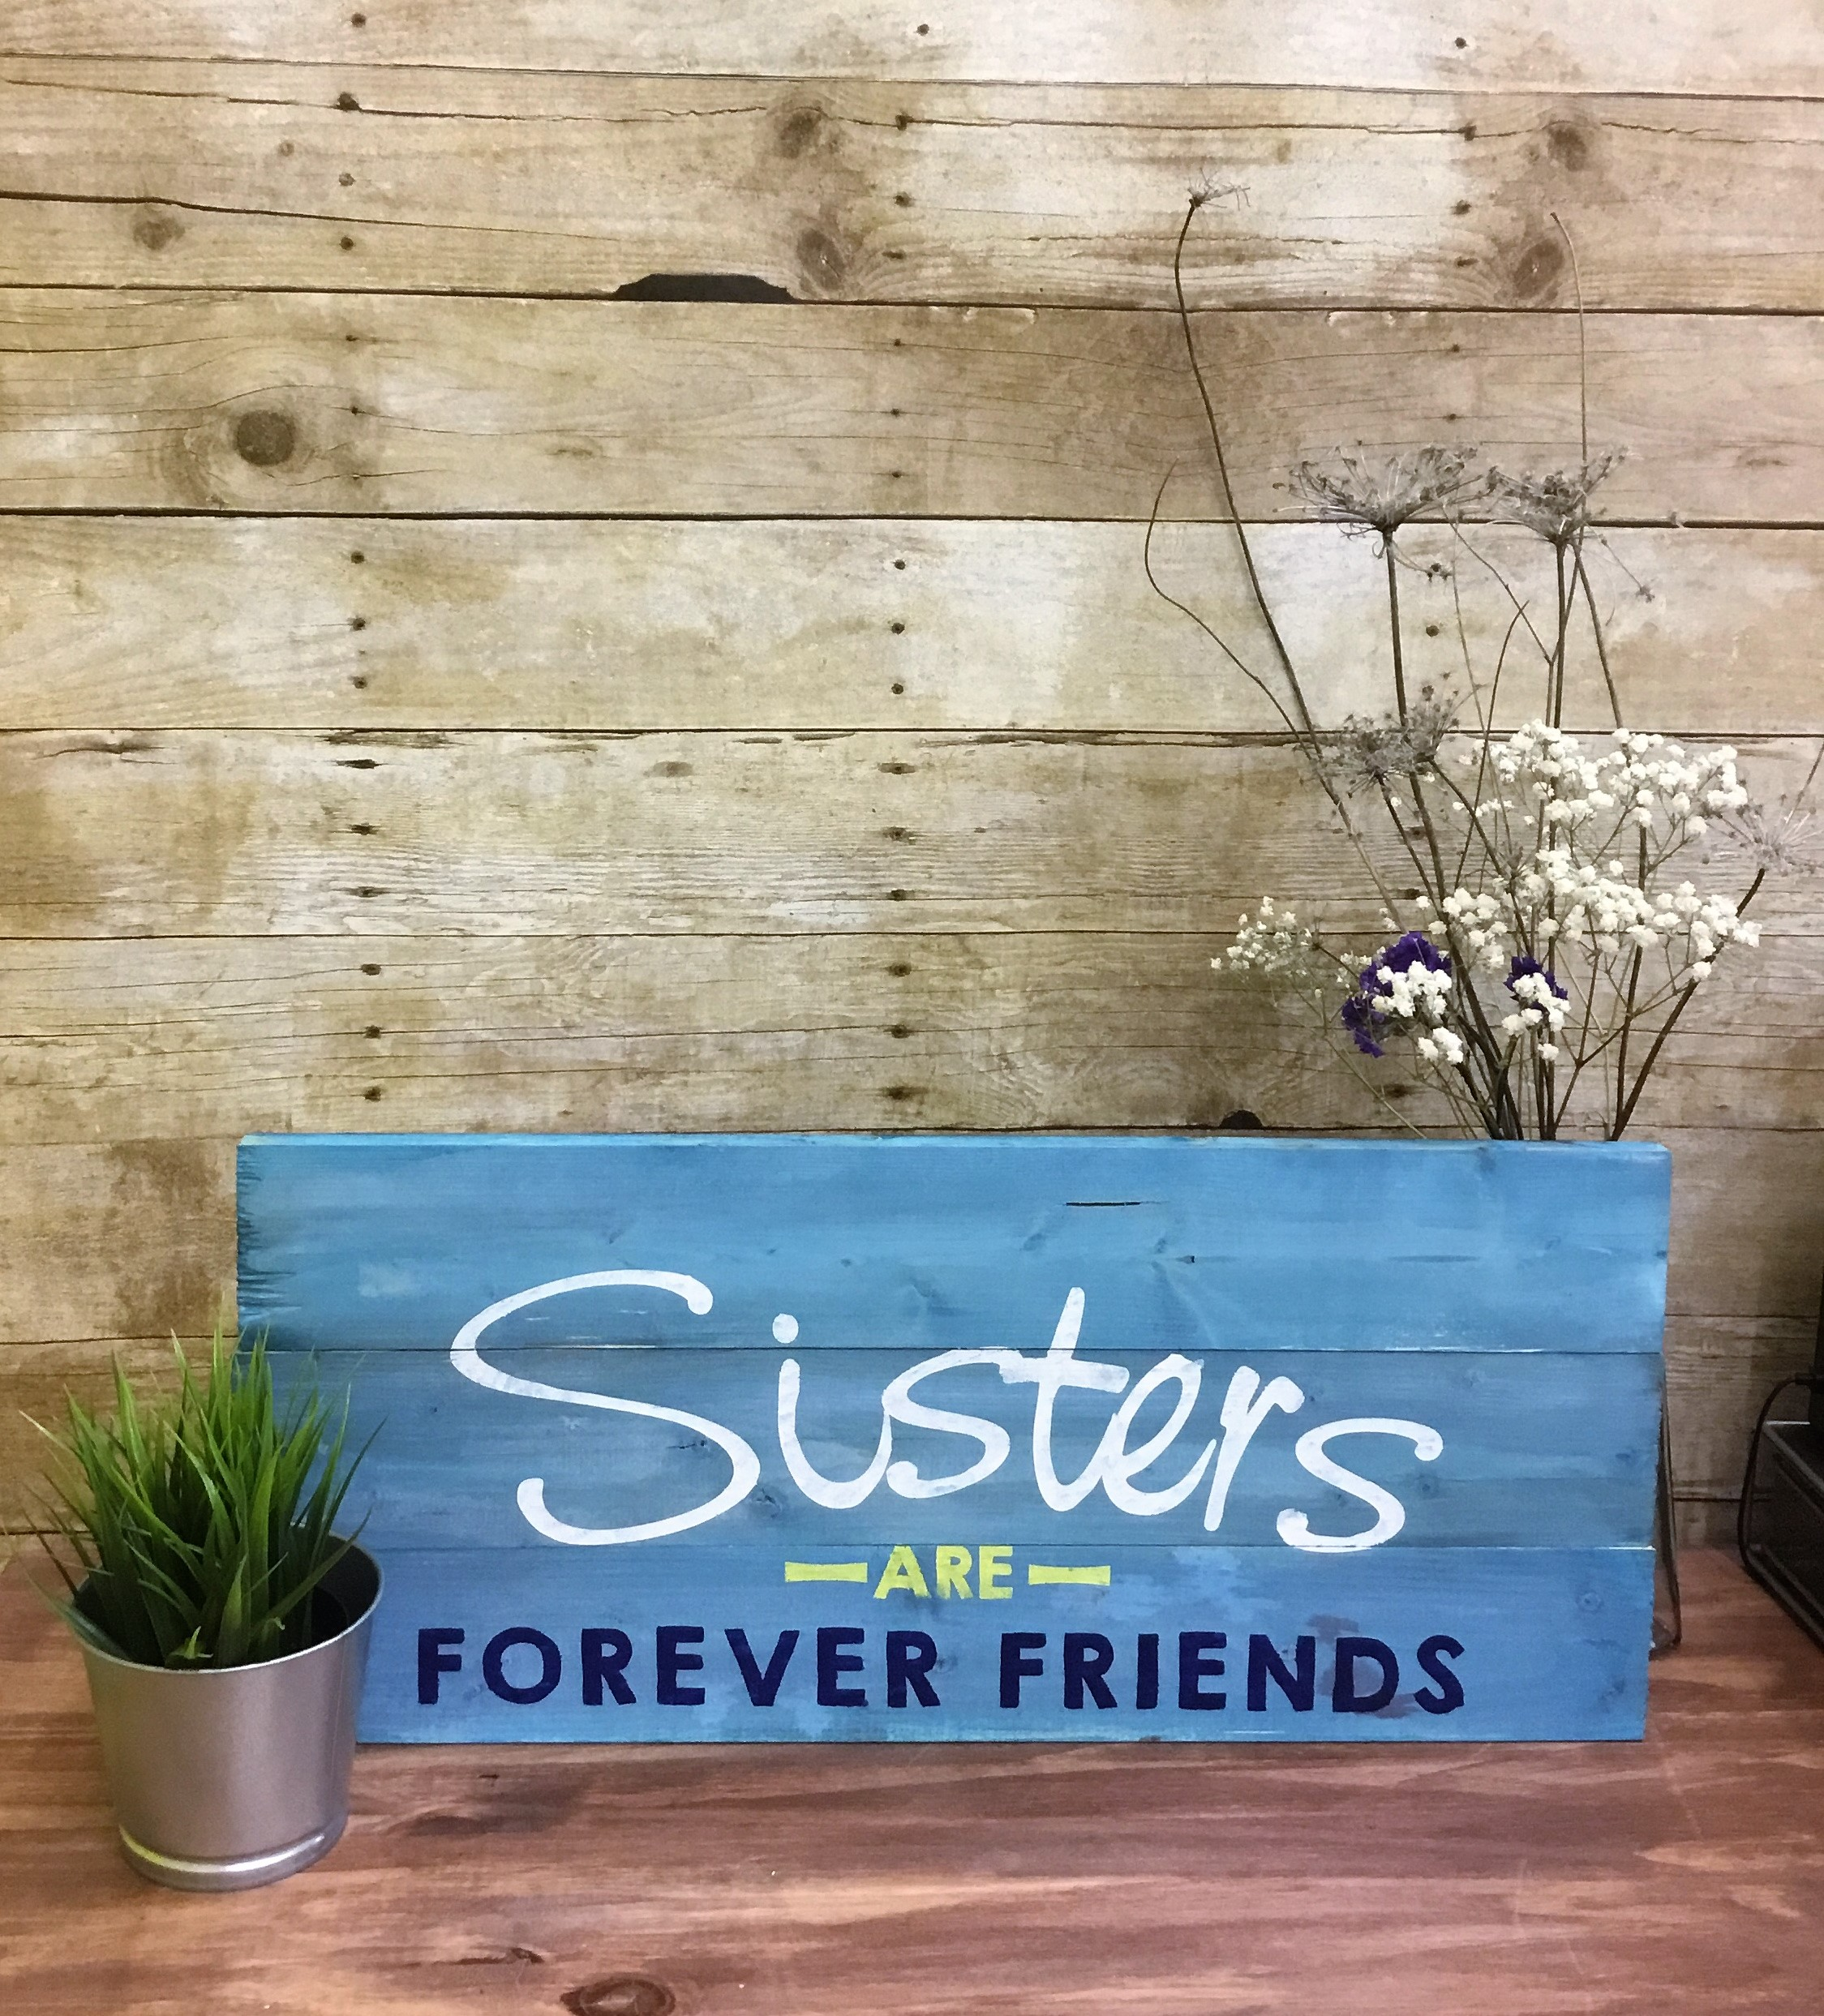 Sisters are forever friends